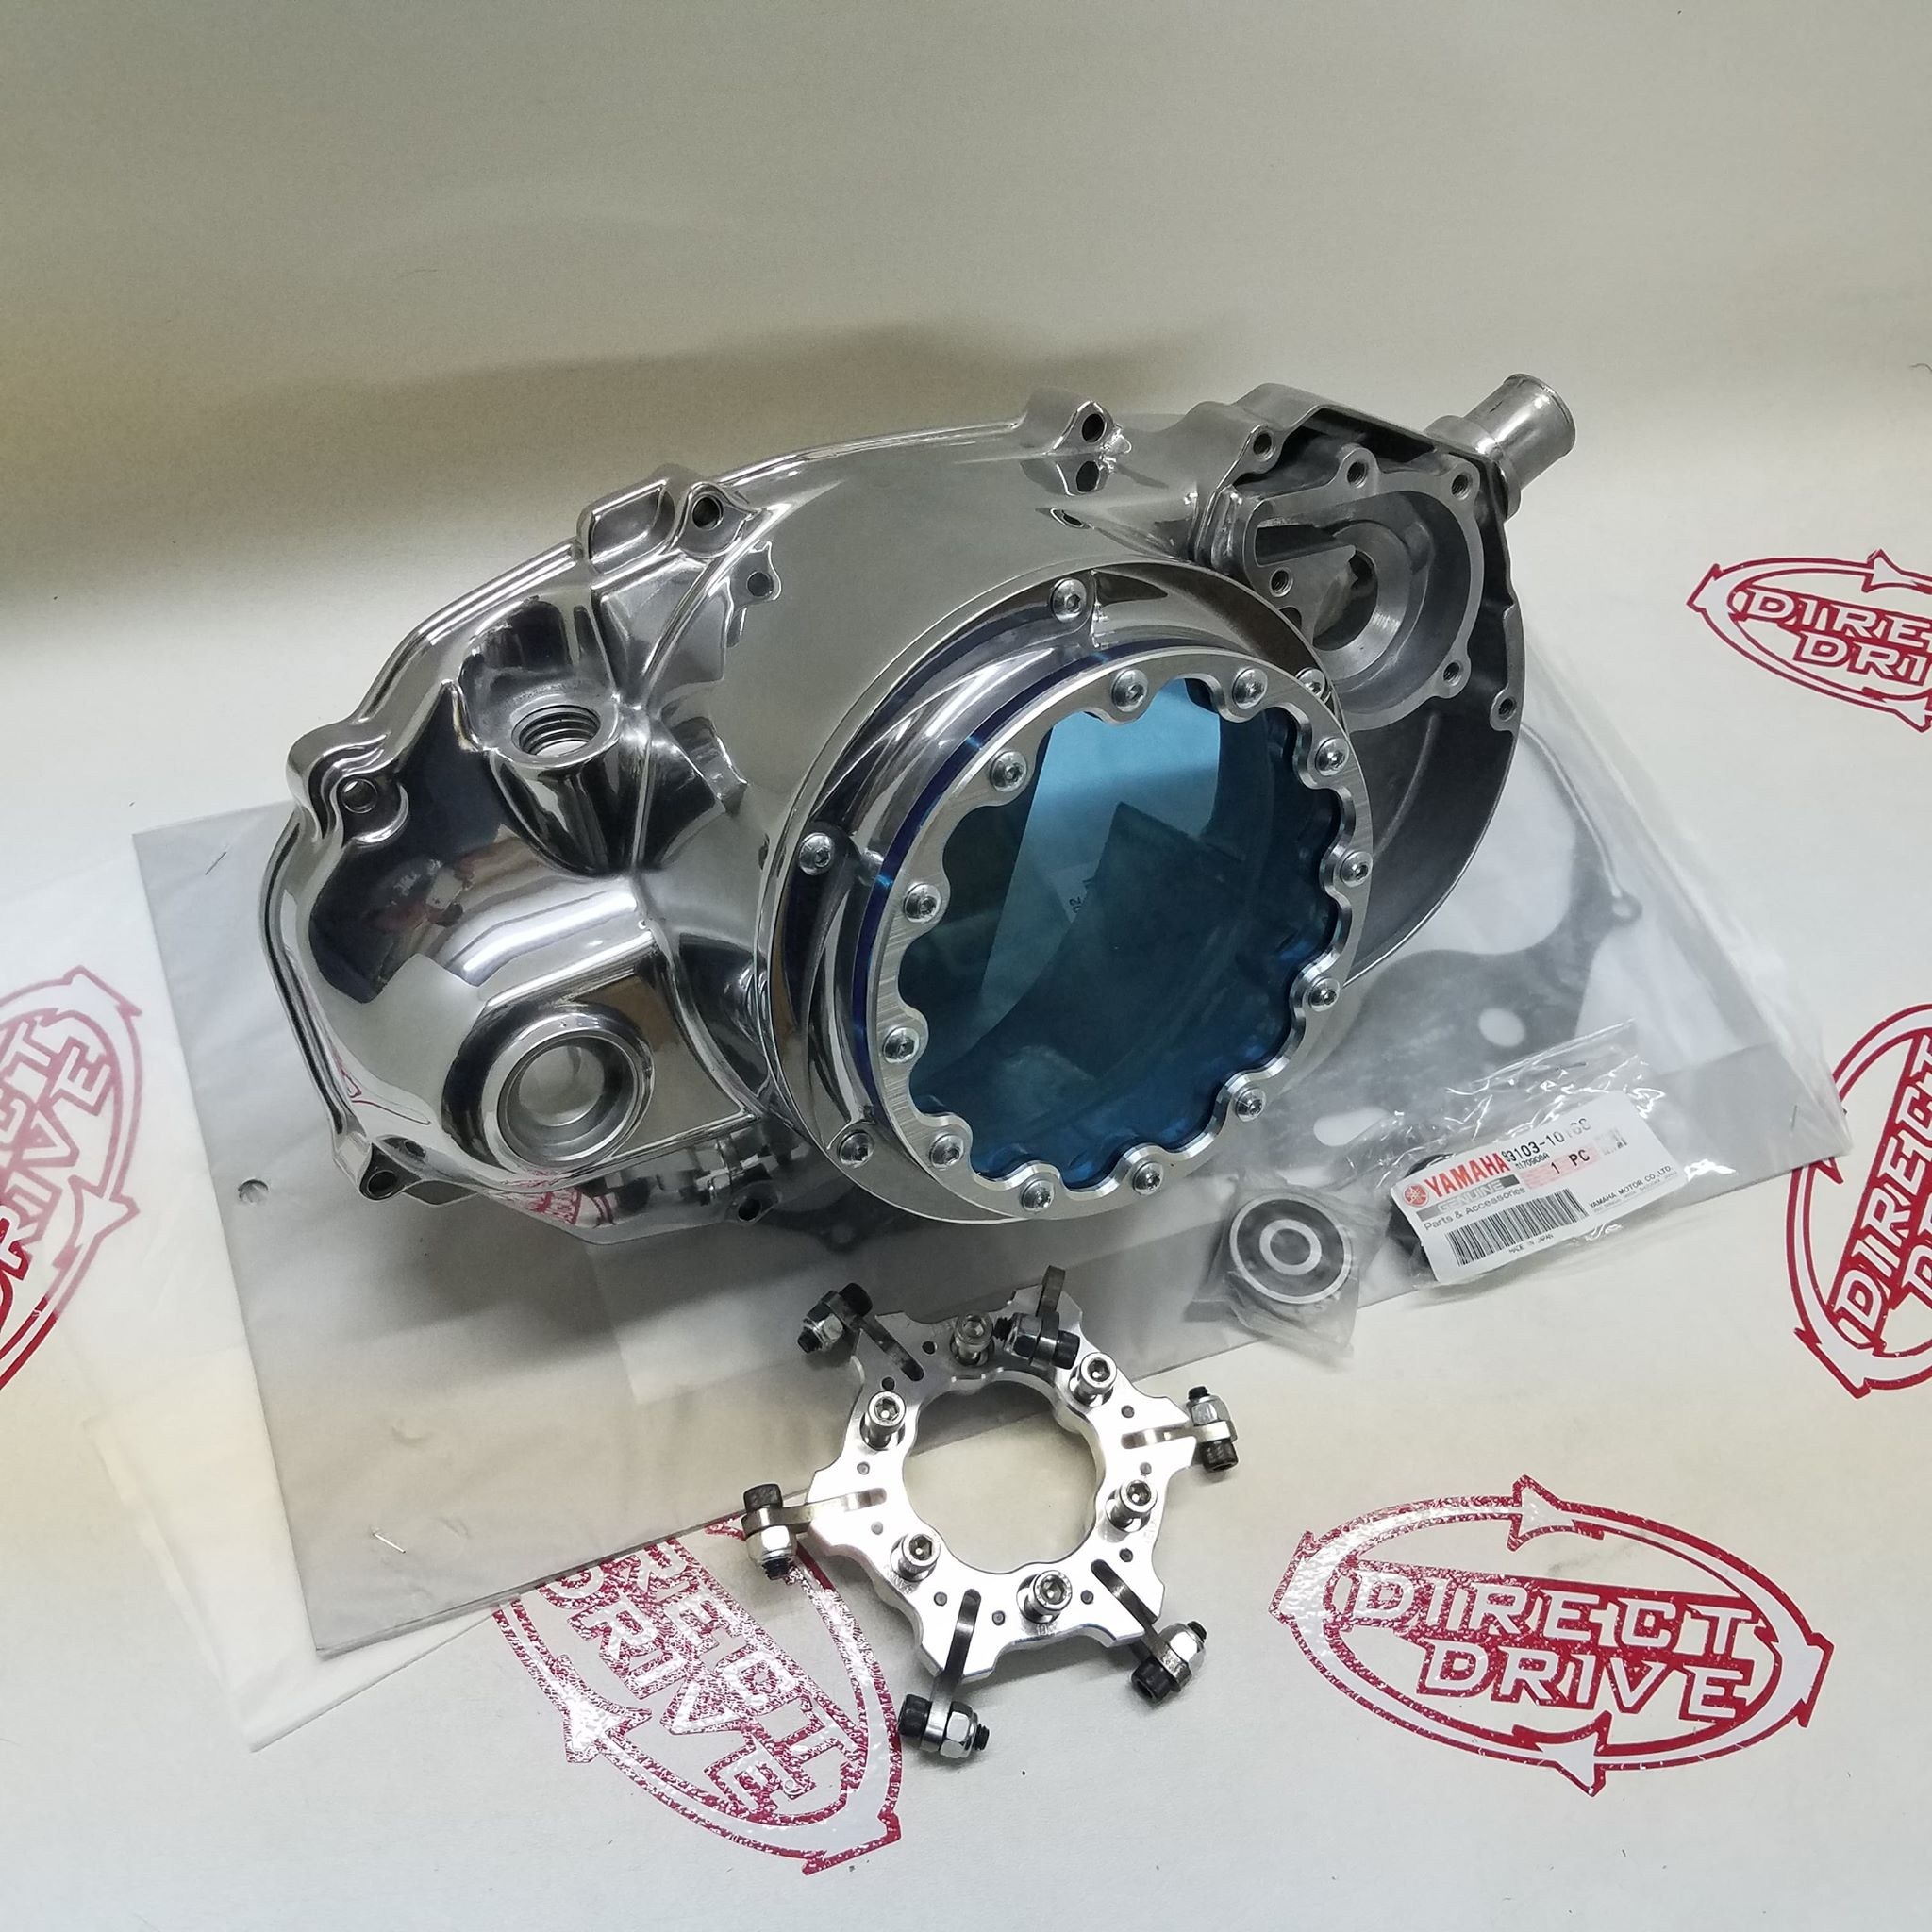 2 Stroke Clutch Cover / lockout